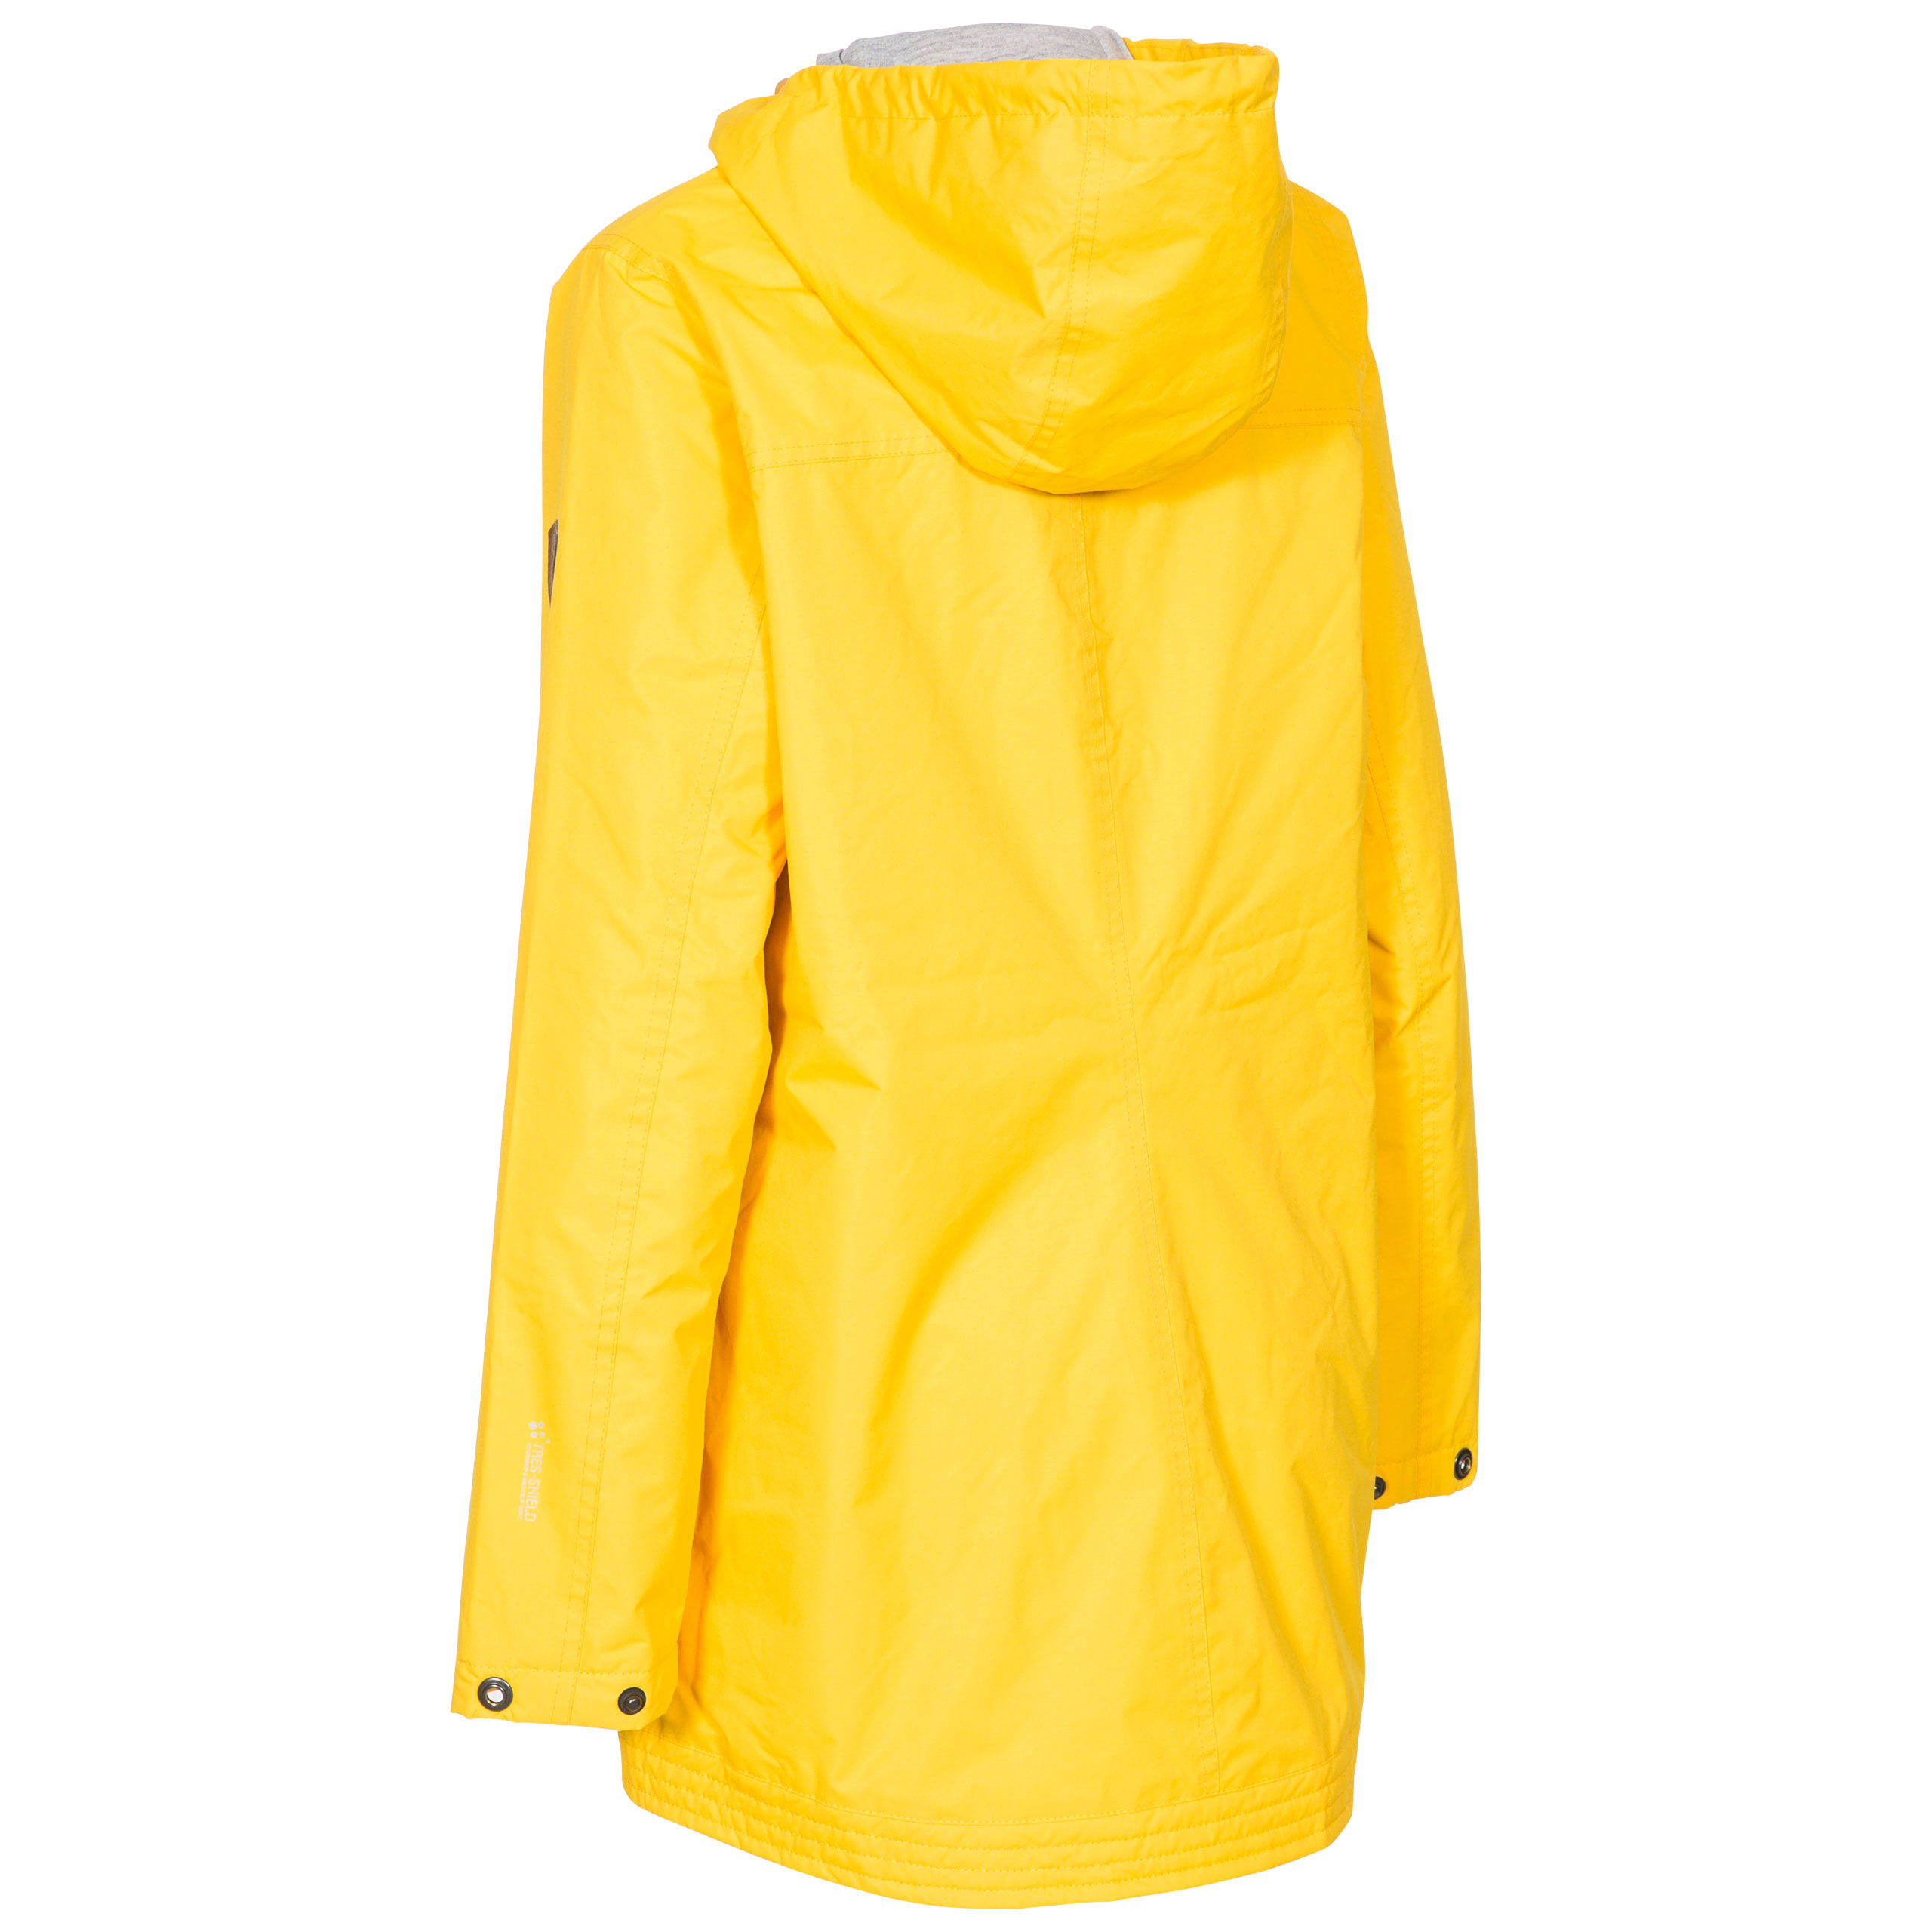 Trespass-Womens-Rain-Jacket-Waterproof-Hooded-Rain-Coat-Yellow-amp-Green thumbnail 15